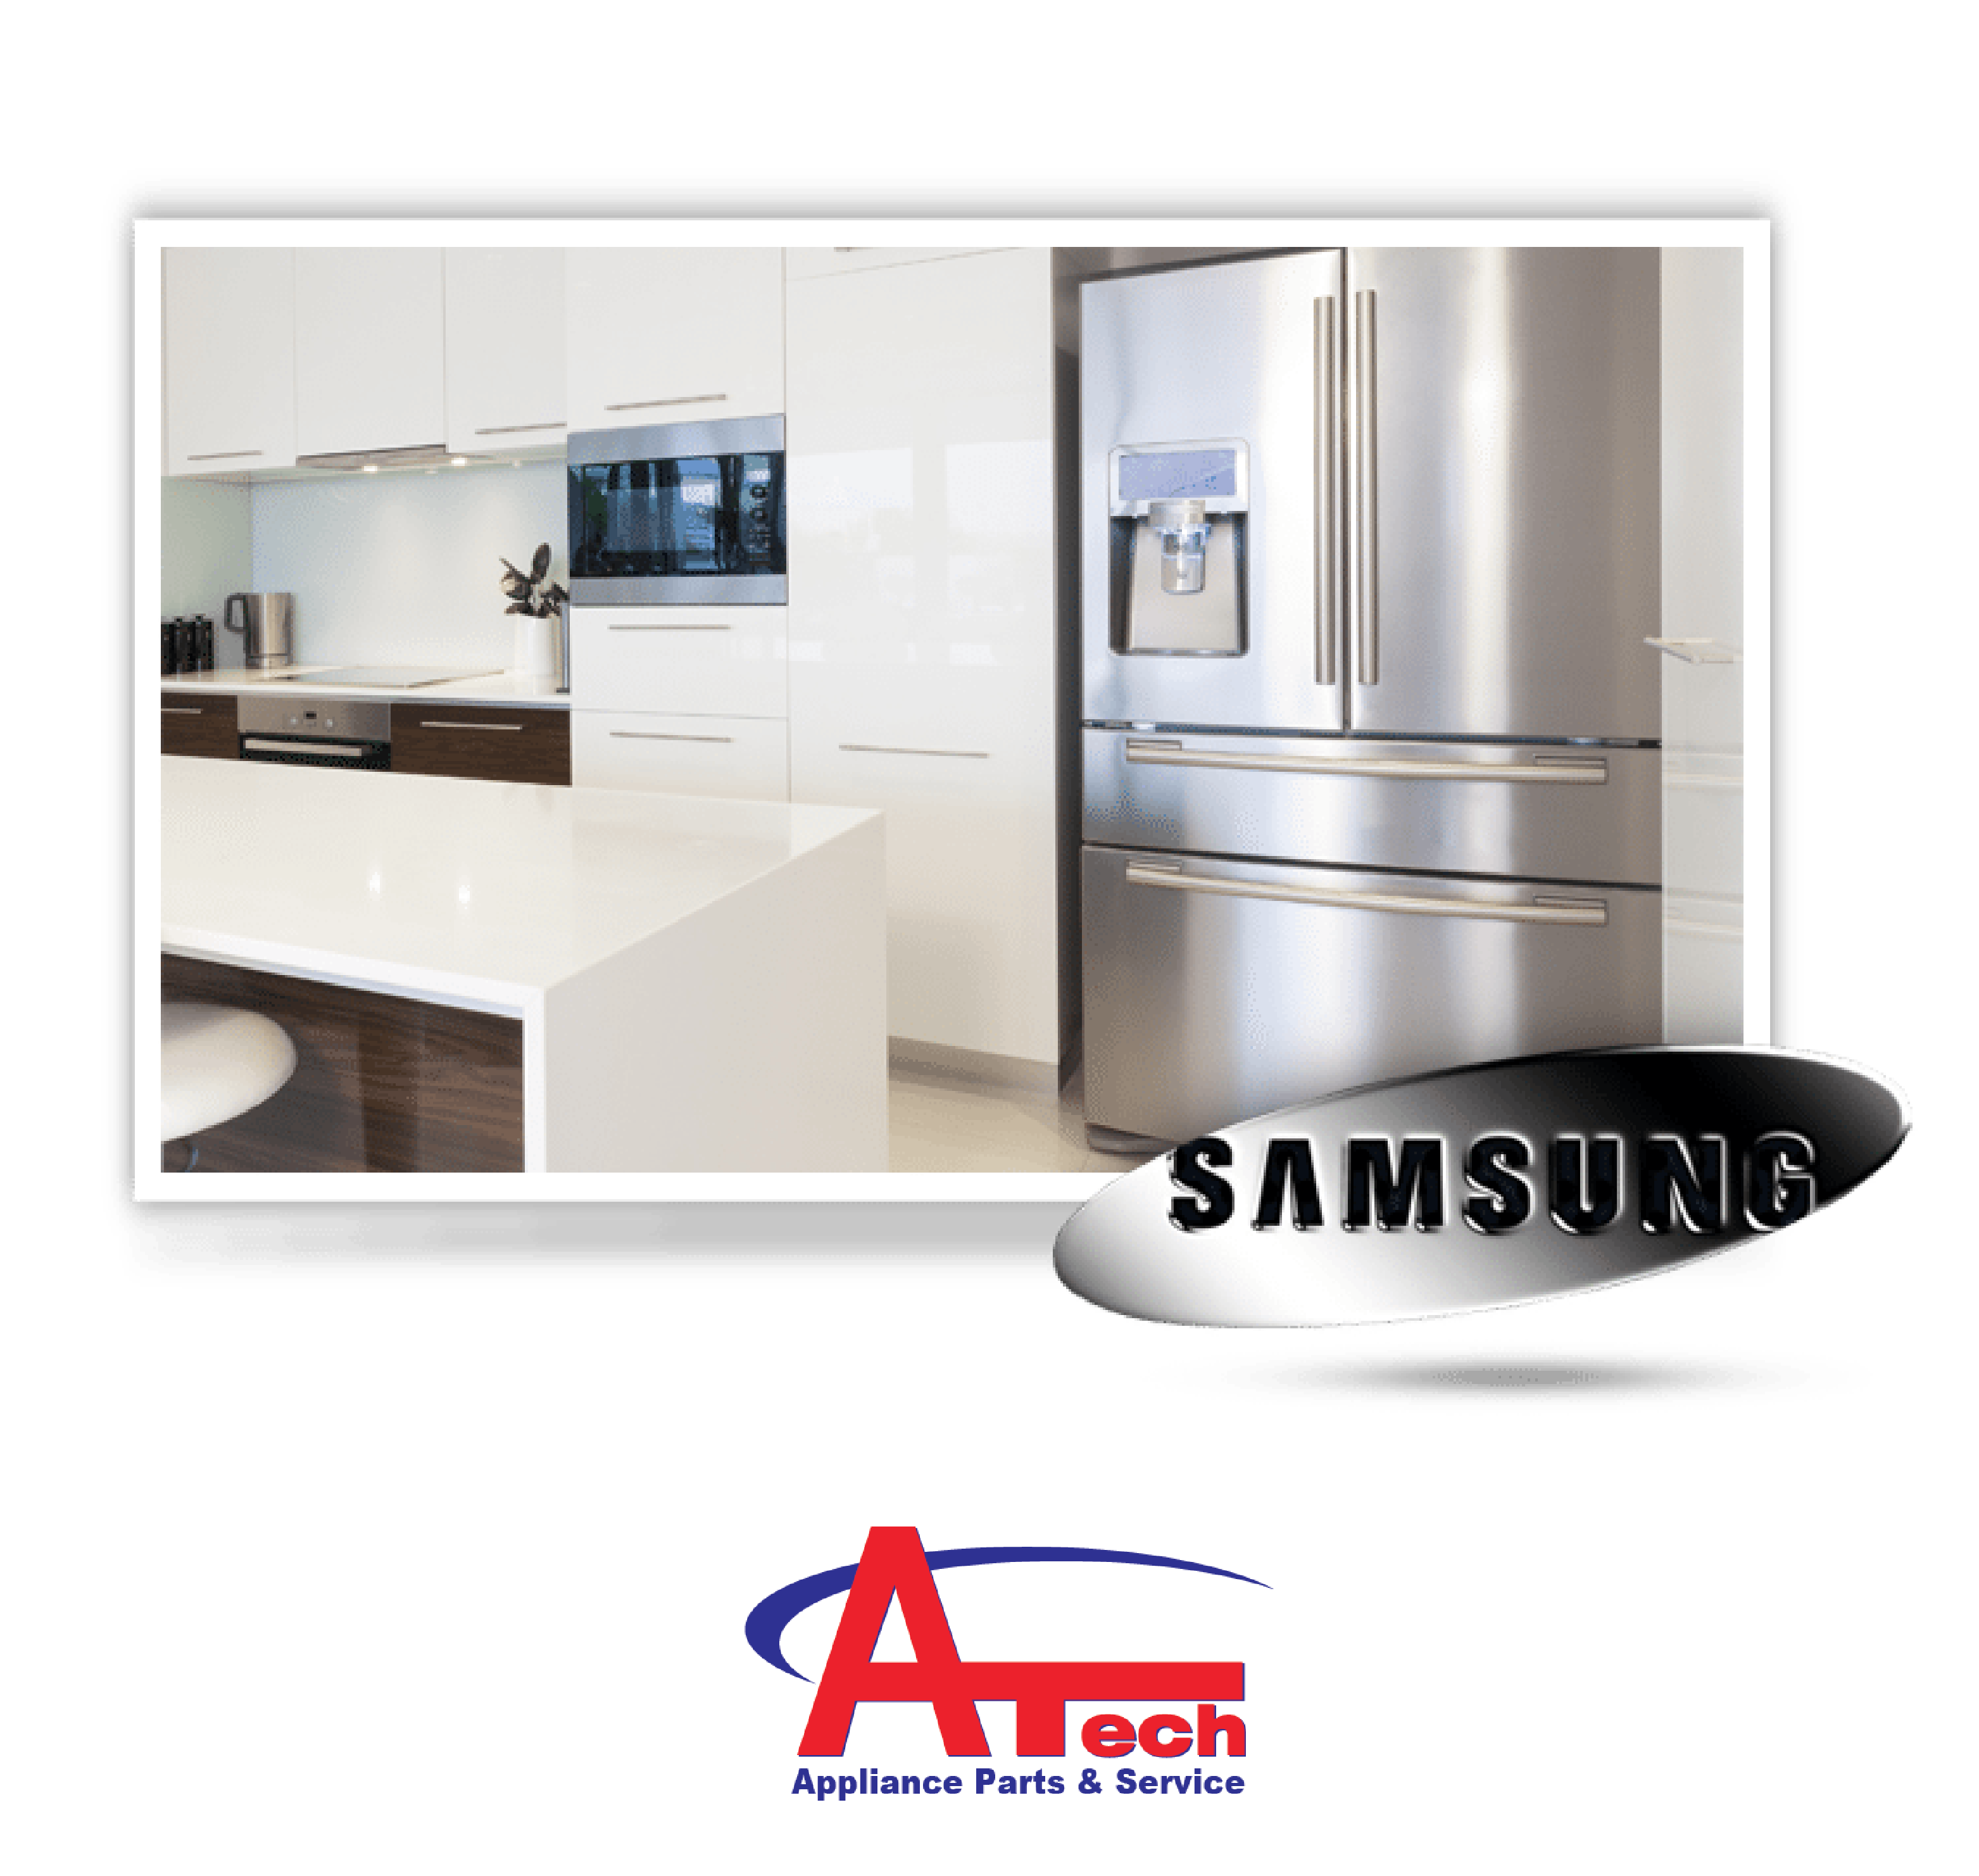 Samsung Appliances Enhance Your Home's Efficiency and Style